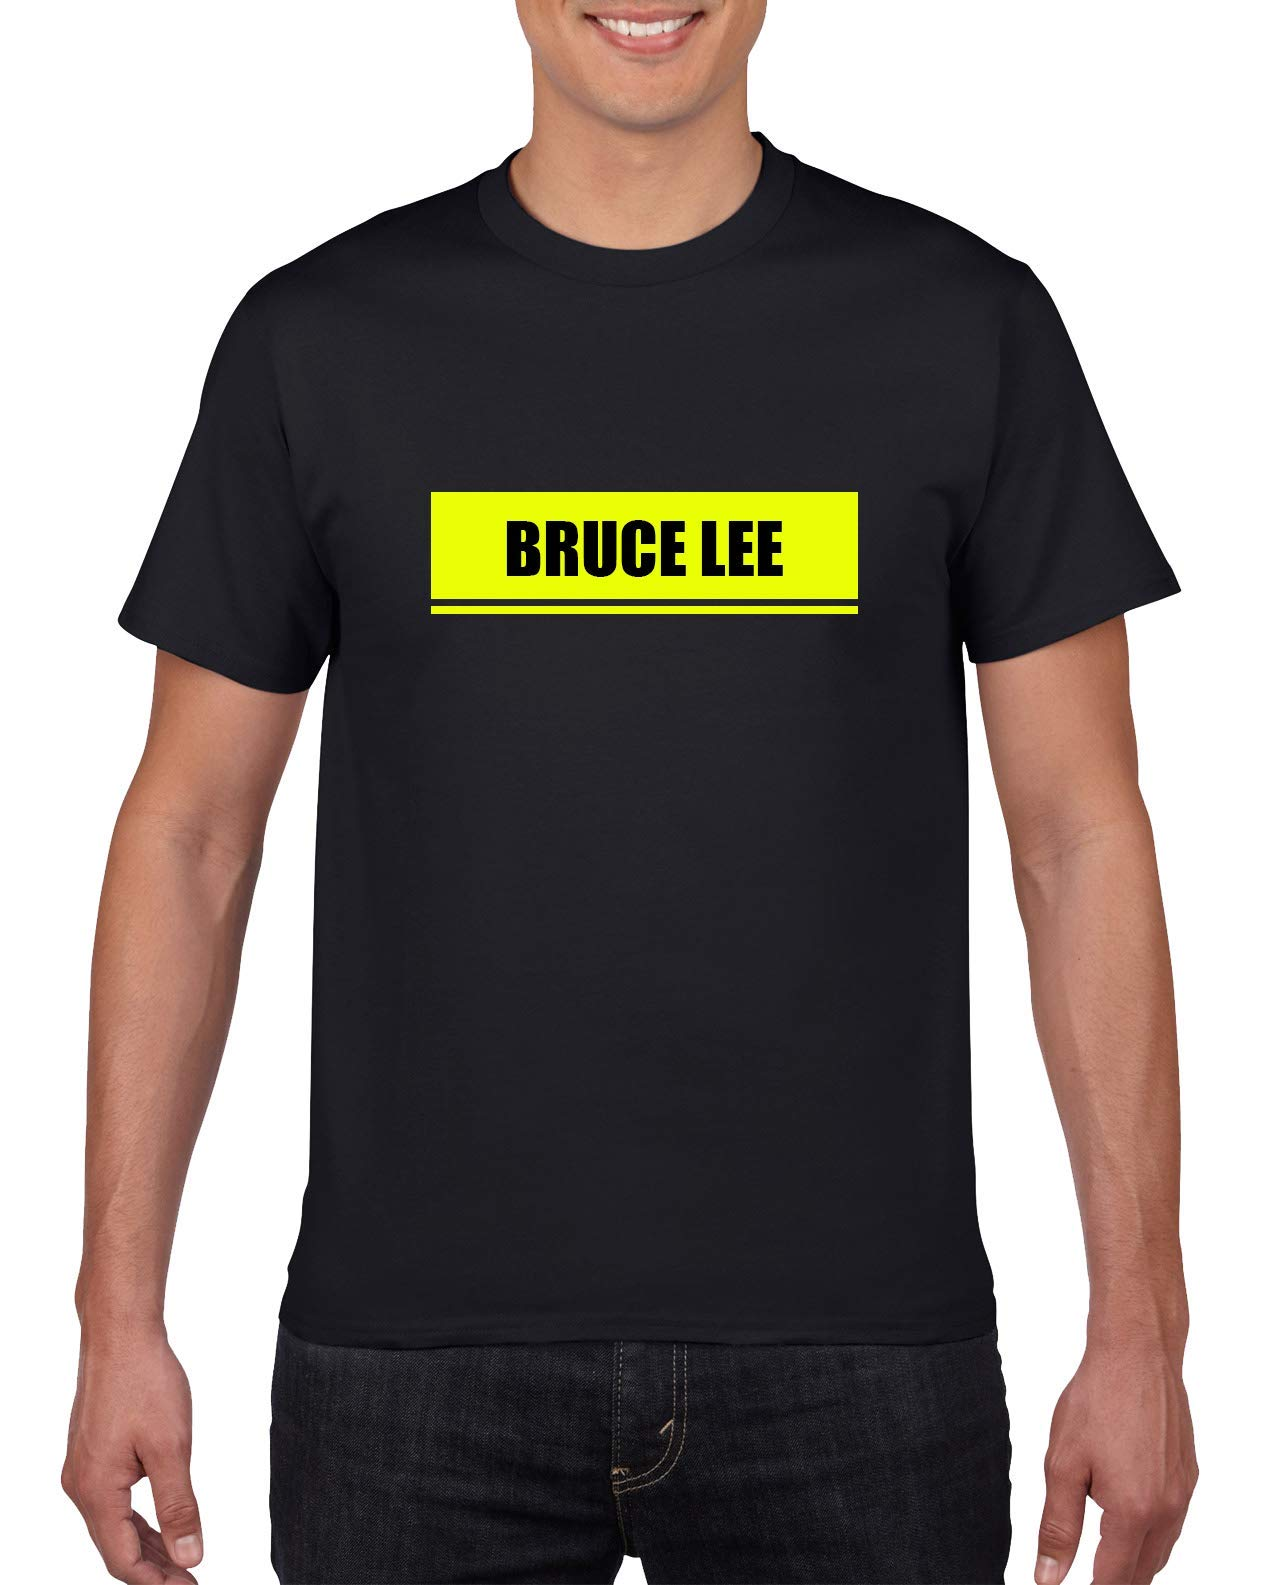 Bruce Lee Designer Choice T Shirt Graphics Tee Best Gift For Someone Special 5270